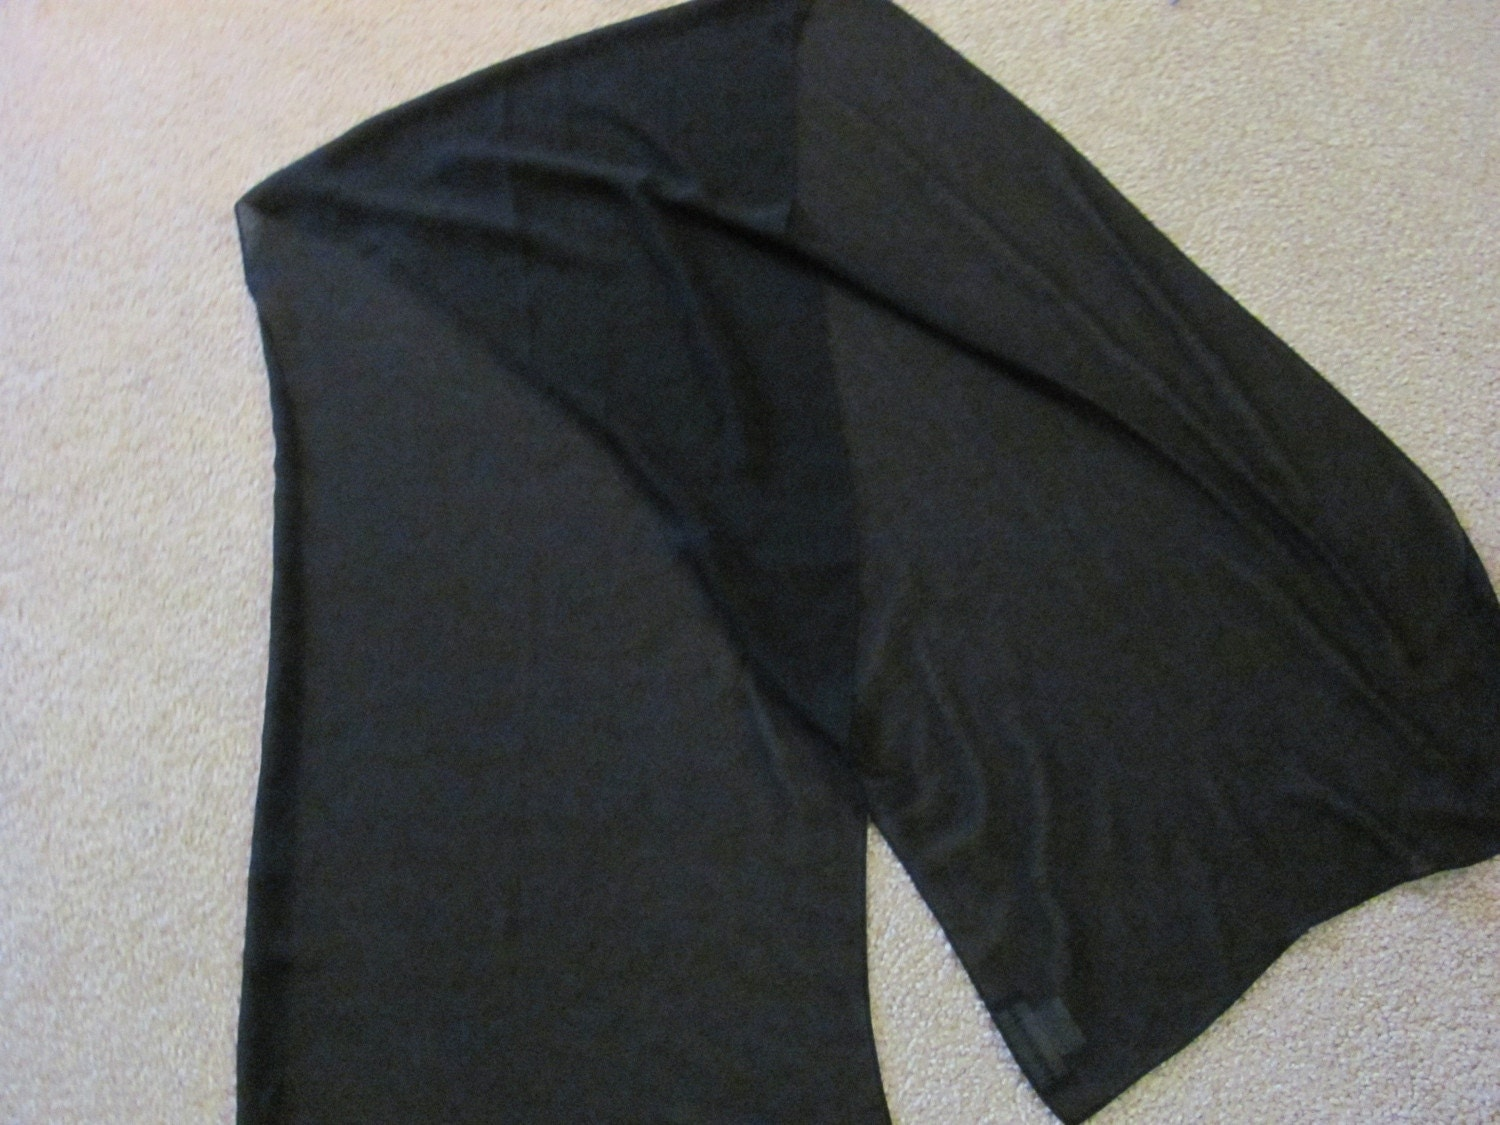 Elegant Black Sheer Large Scarf Shawl or Wrap - 19 x 72 Long